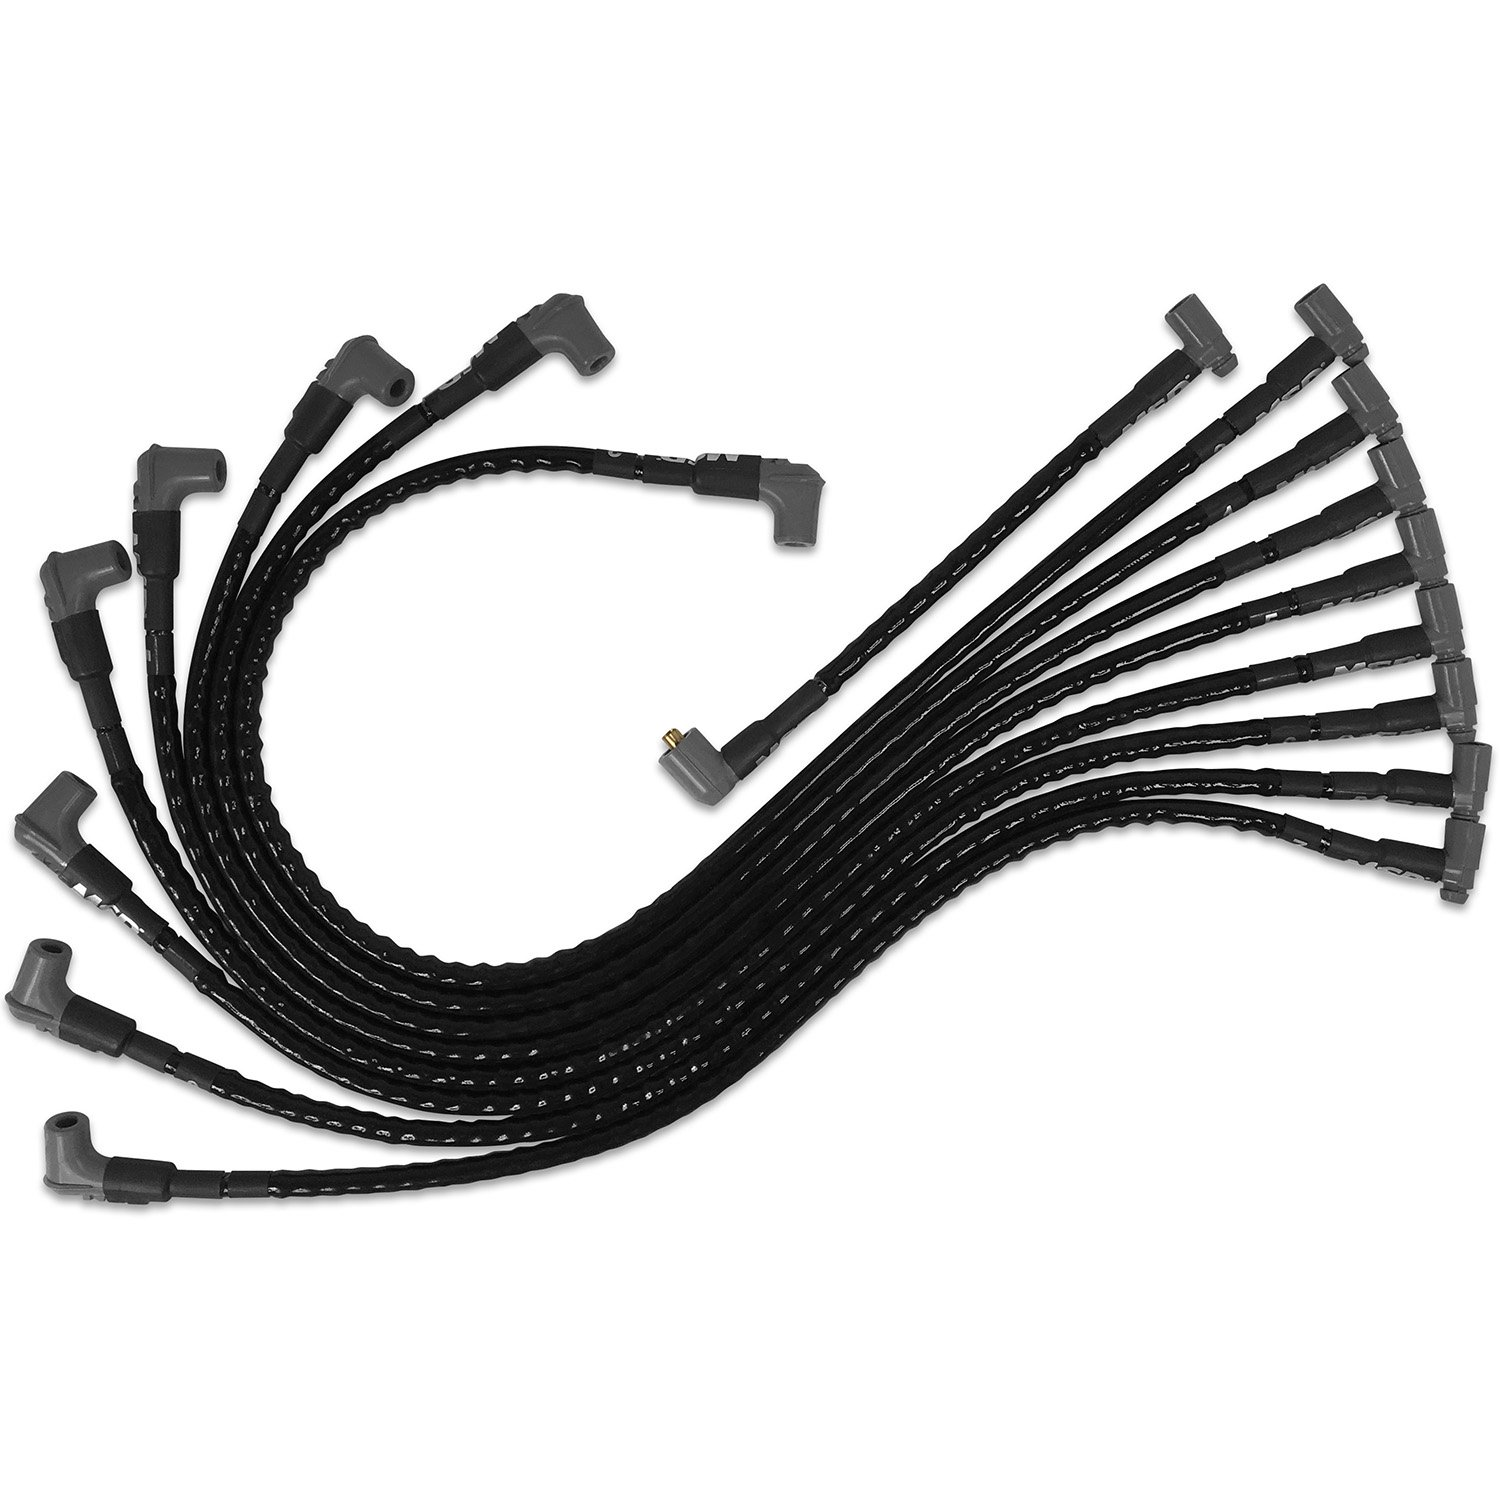 MSD 35591 Sleeved Spark Plug Wires for SBC under exhaust